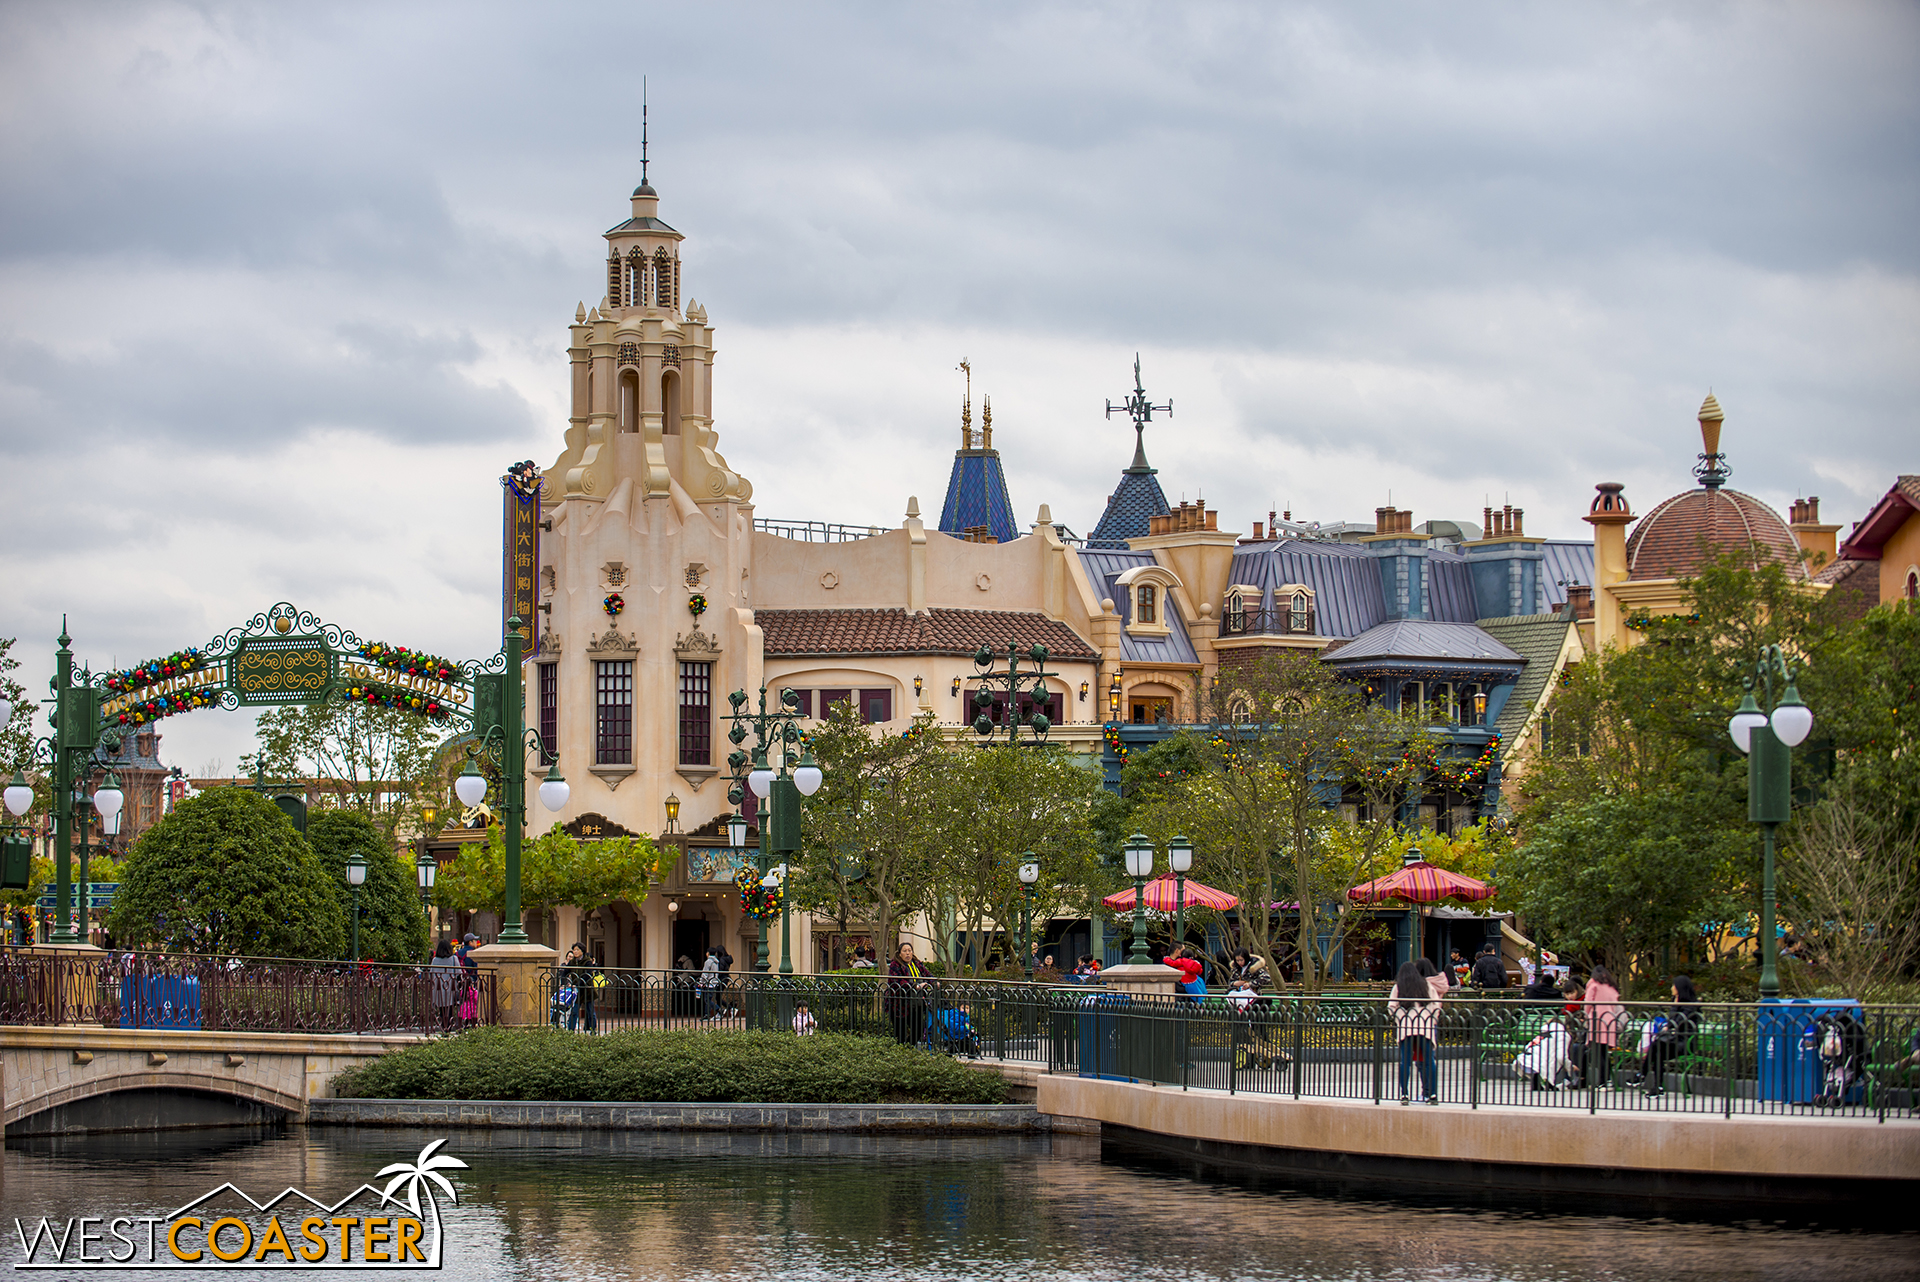 A familiar-looking tower rises up at the end of Mickey Avenue.